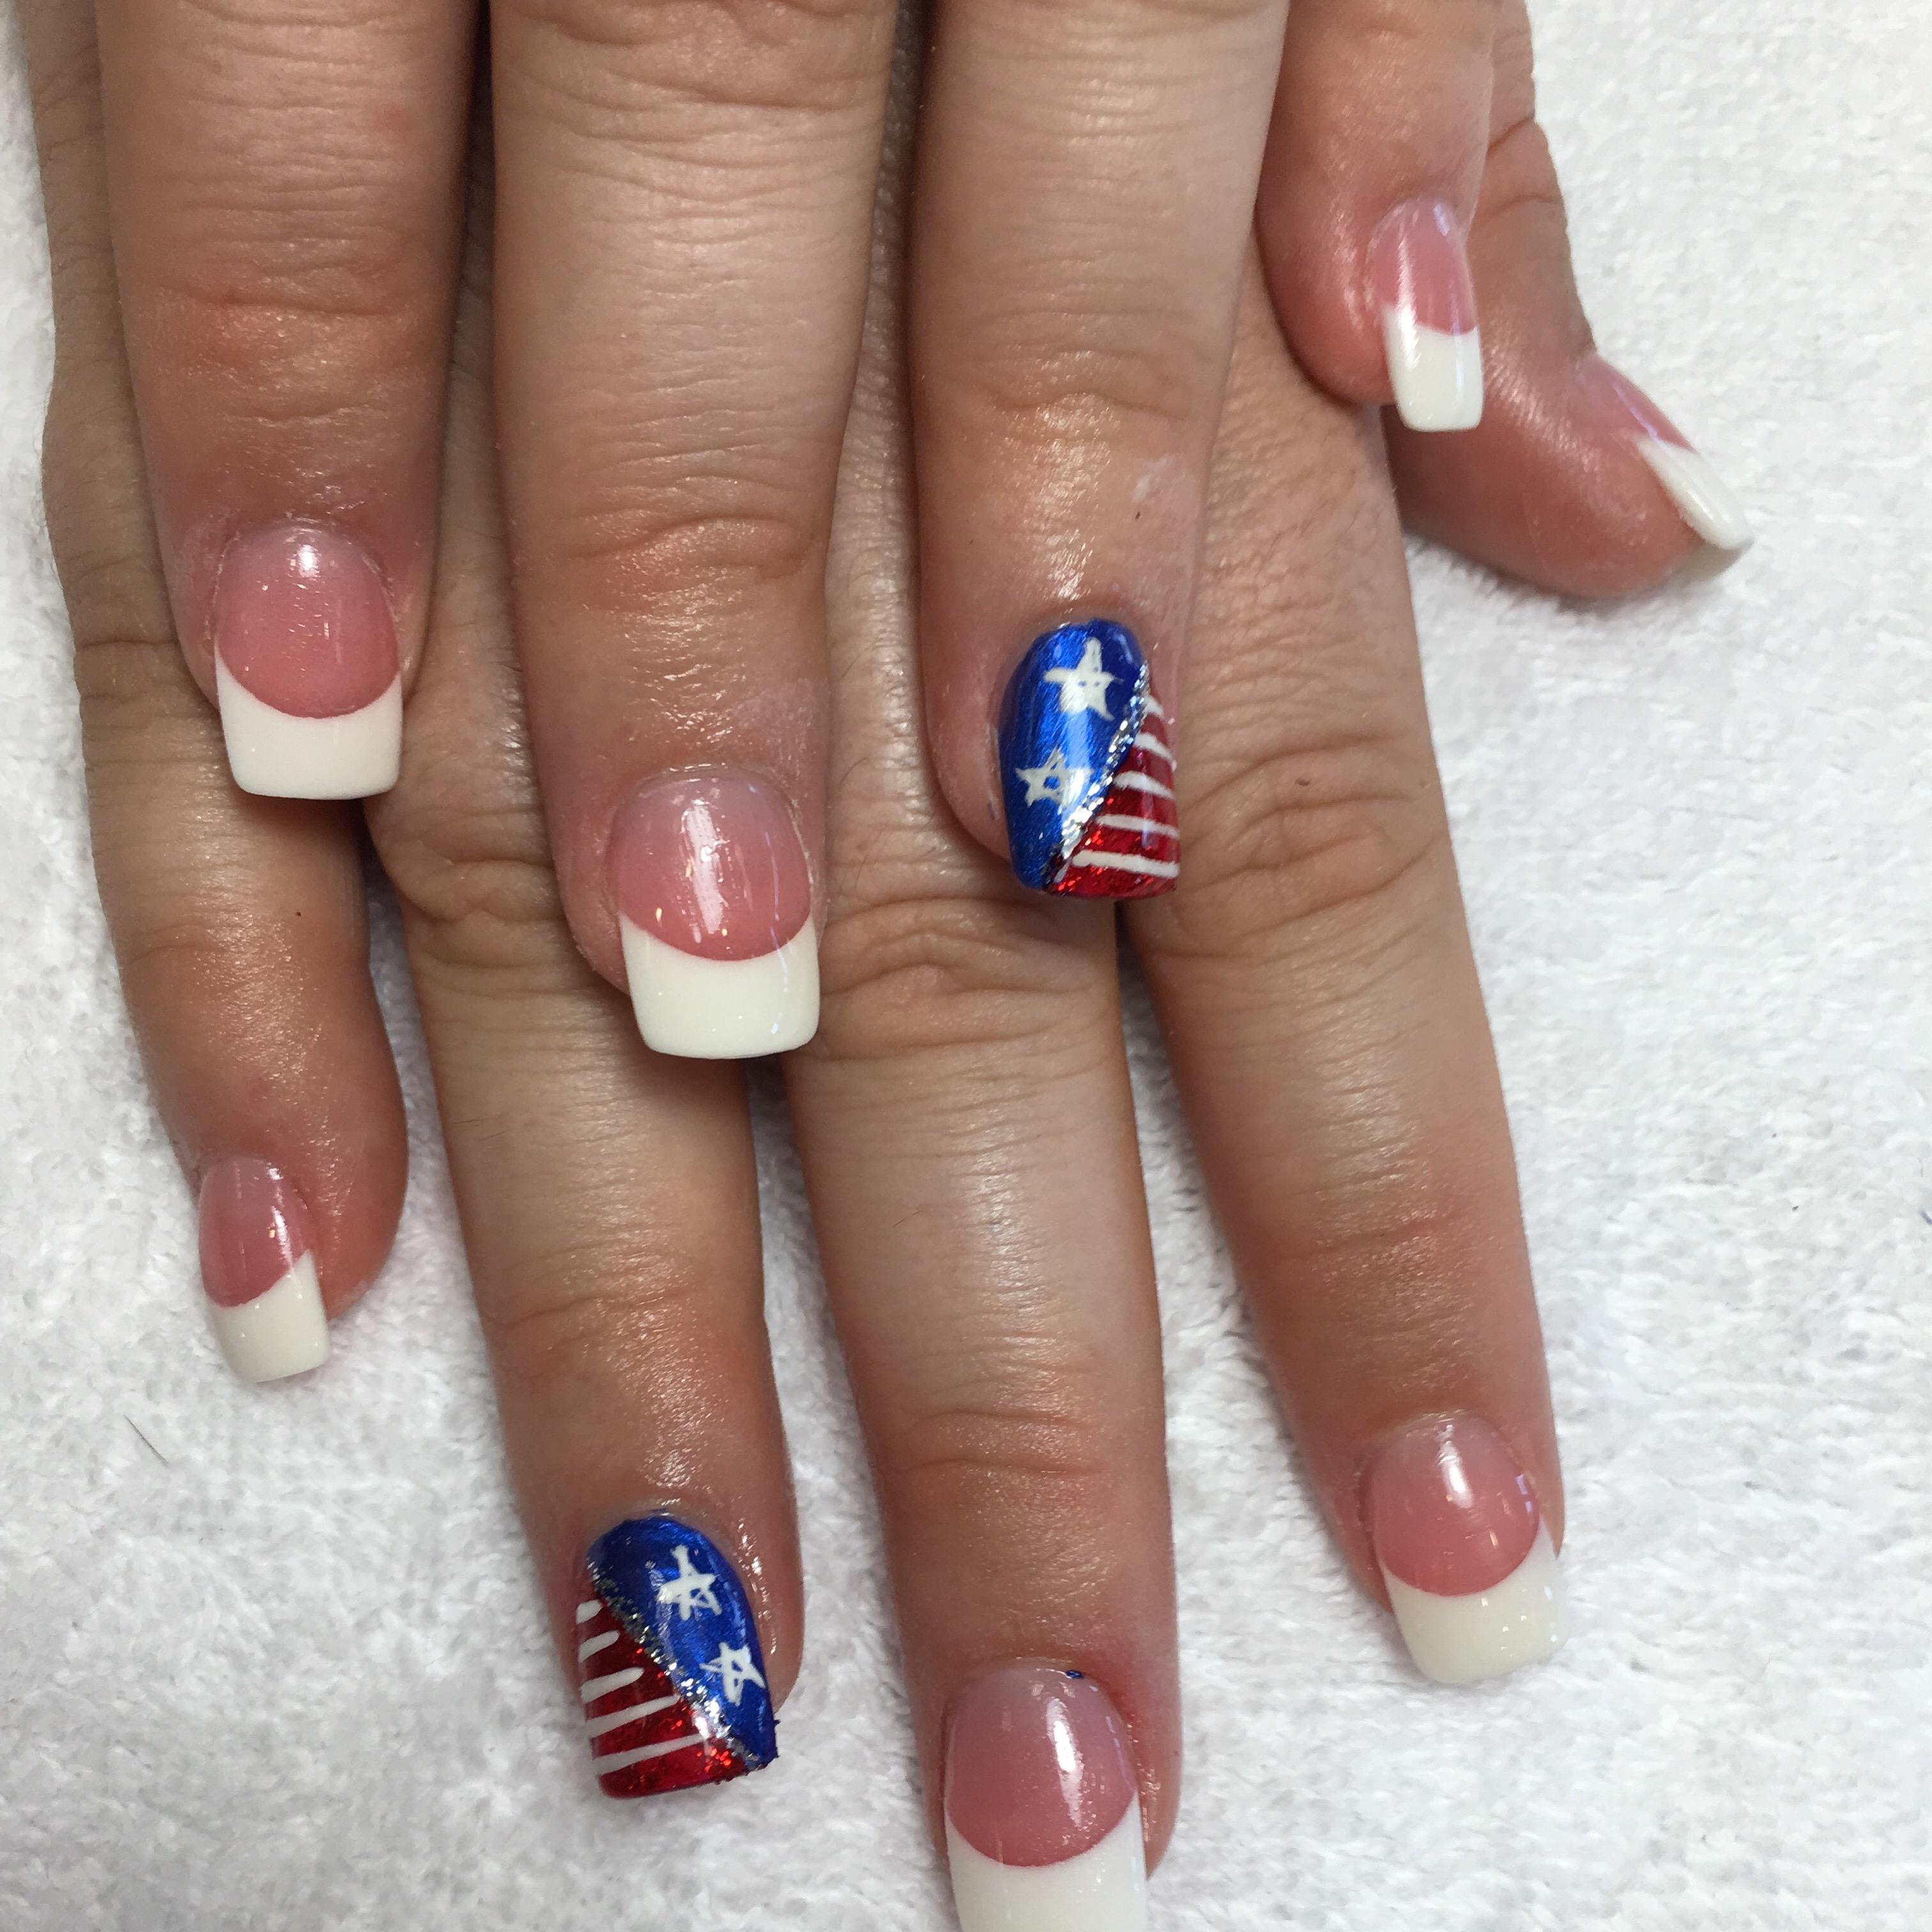 Gorgeous Nail Hair And Spa 960 6th St Ste 103a, Norco, CA 92860 - YP.com